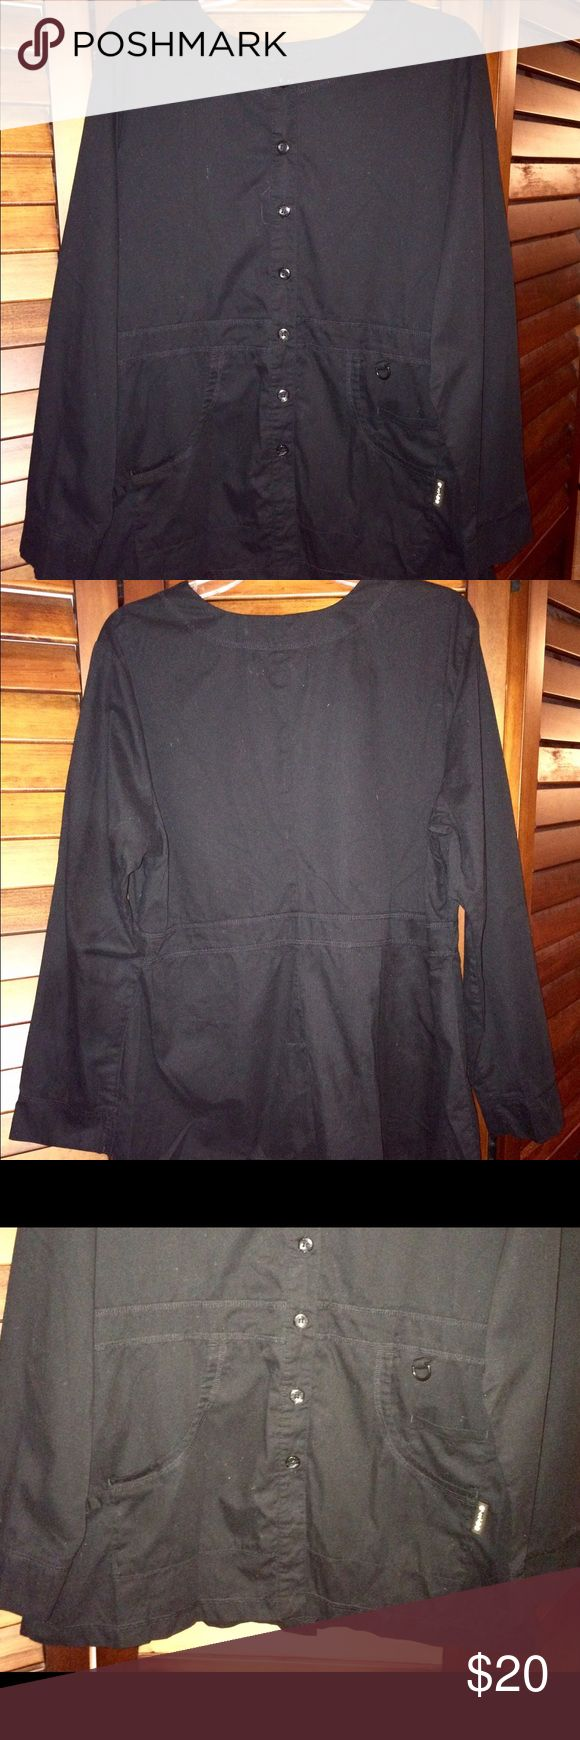 Koi Woman's Olivia Scrub Jacket Style# 406 Large Koi Woman's Olivia Scrub Jacket Style# 406 Size Large Koi stretch scrub black jacket Size Large Style Olivia  Style 406 Pockets Button Front Perfect for the cold air conditioned hospitals and offices during the summer koi by kathy peterson Jackets & Coats